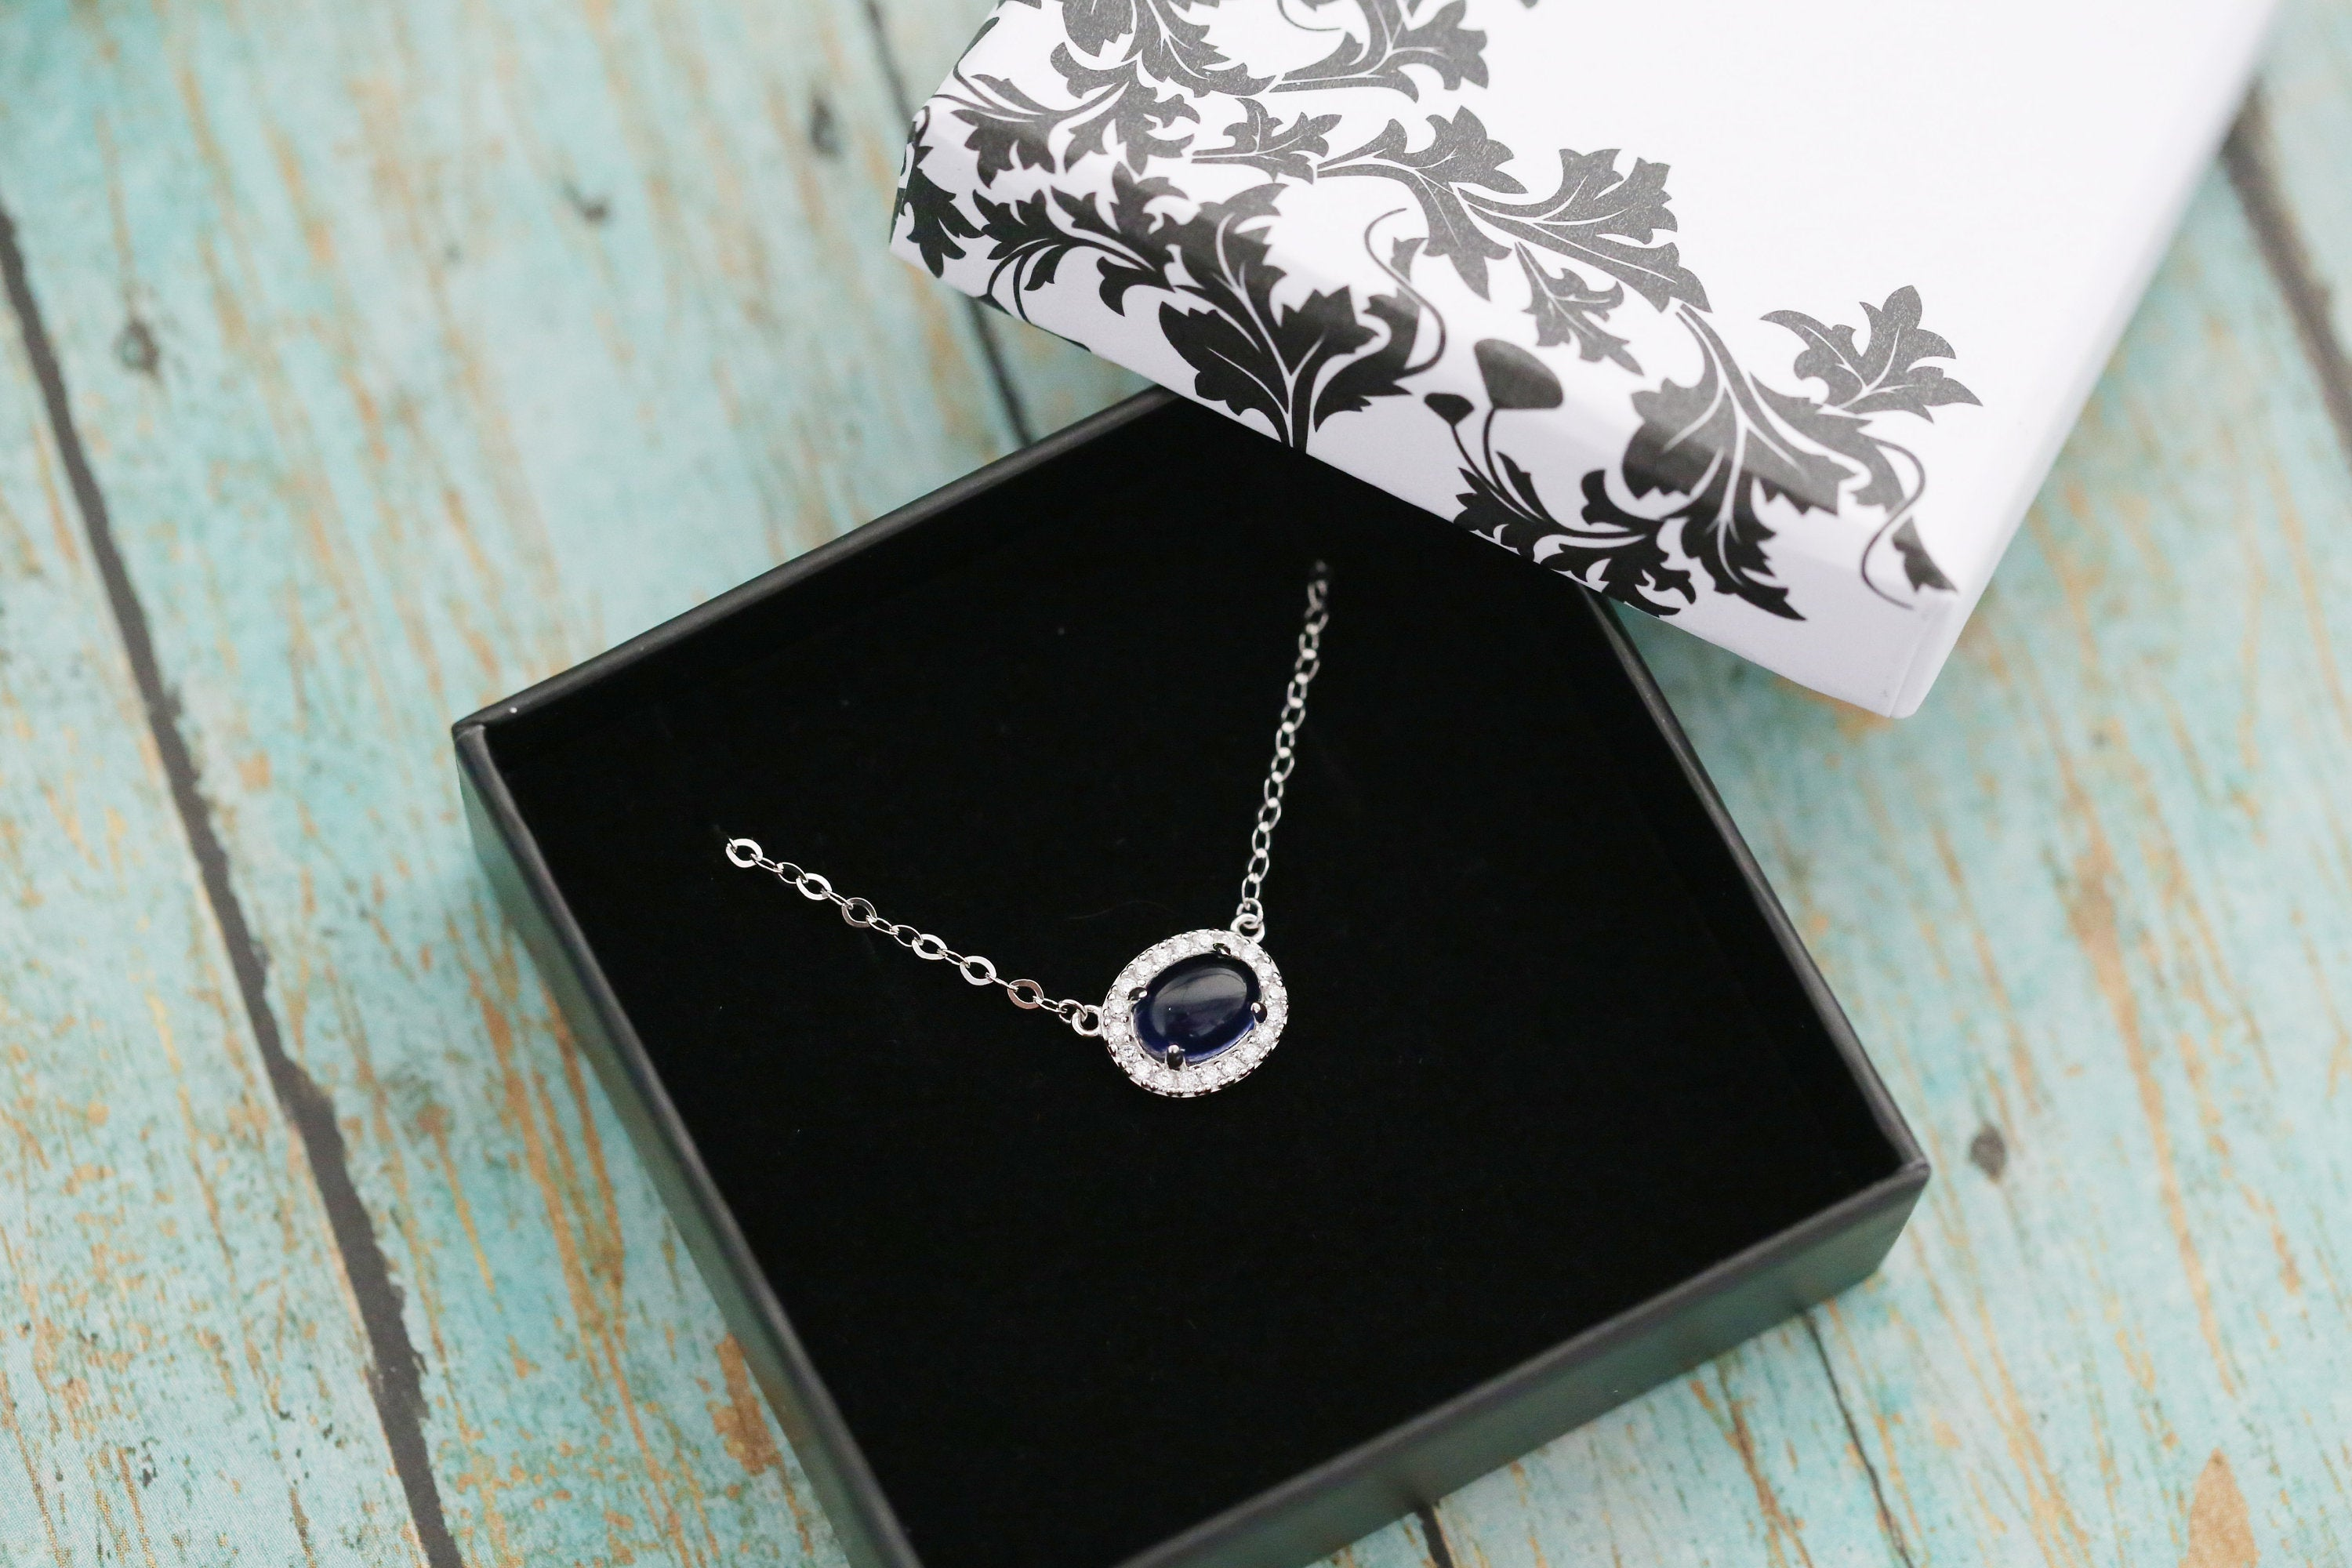 Sapphire Halo Cremation Pendant - Sterling Silver Memorial Pendant for Ashes - Cremation Jewelry - Urn Necklace- Pet Memorial -Ash Necklace